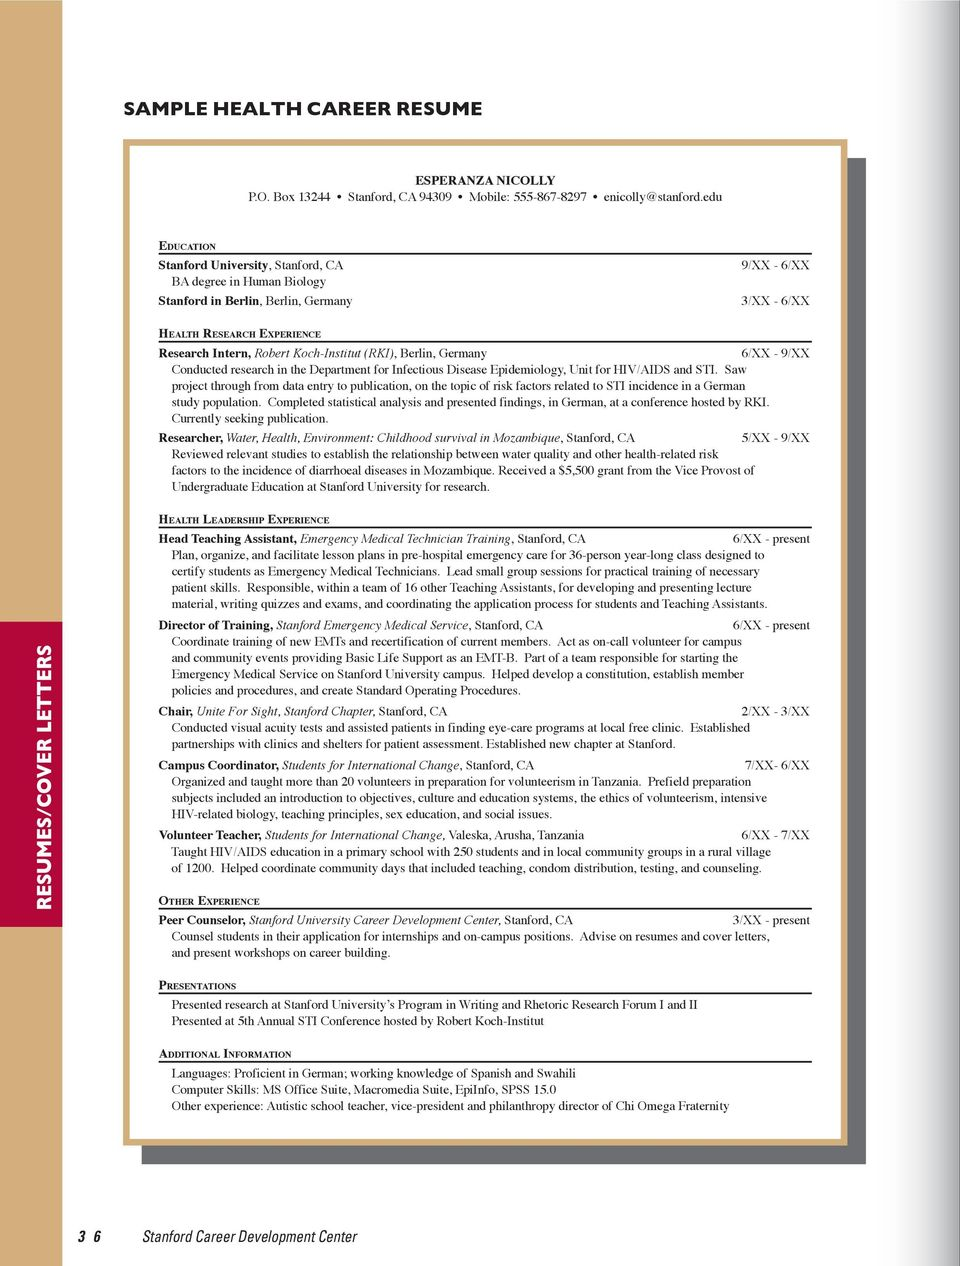 RESUMES/COVER LETTERS - PDF Free Download